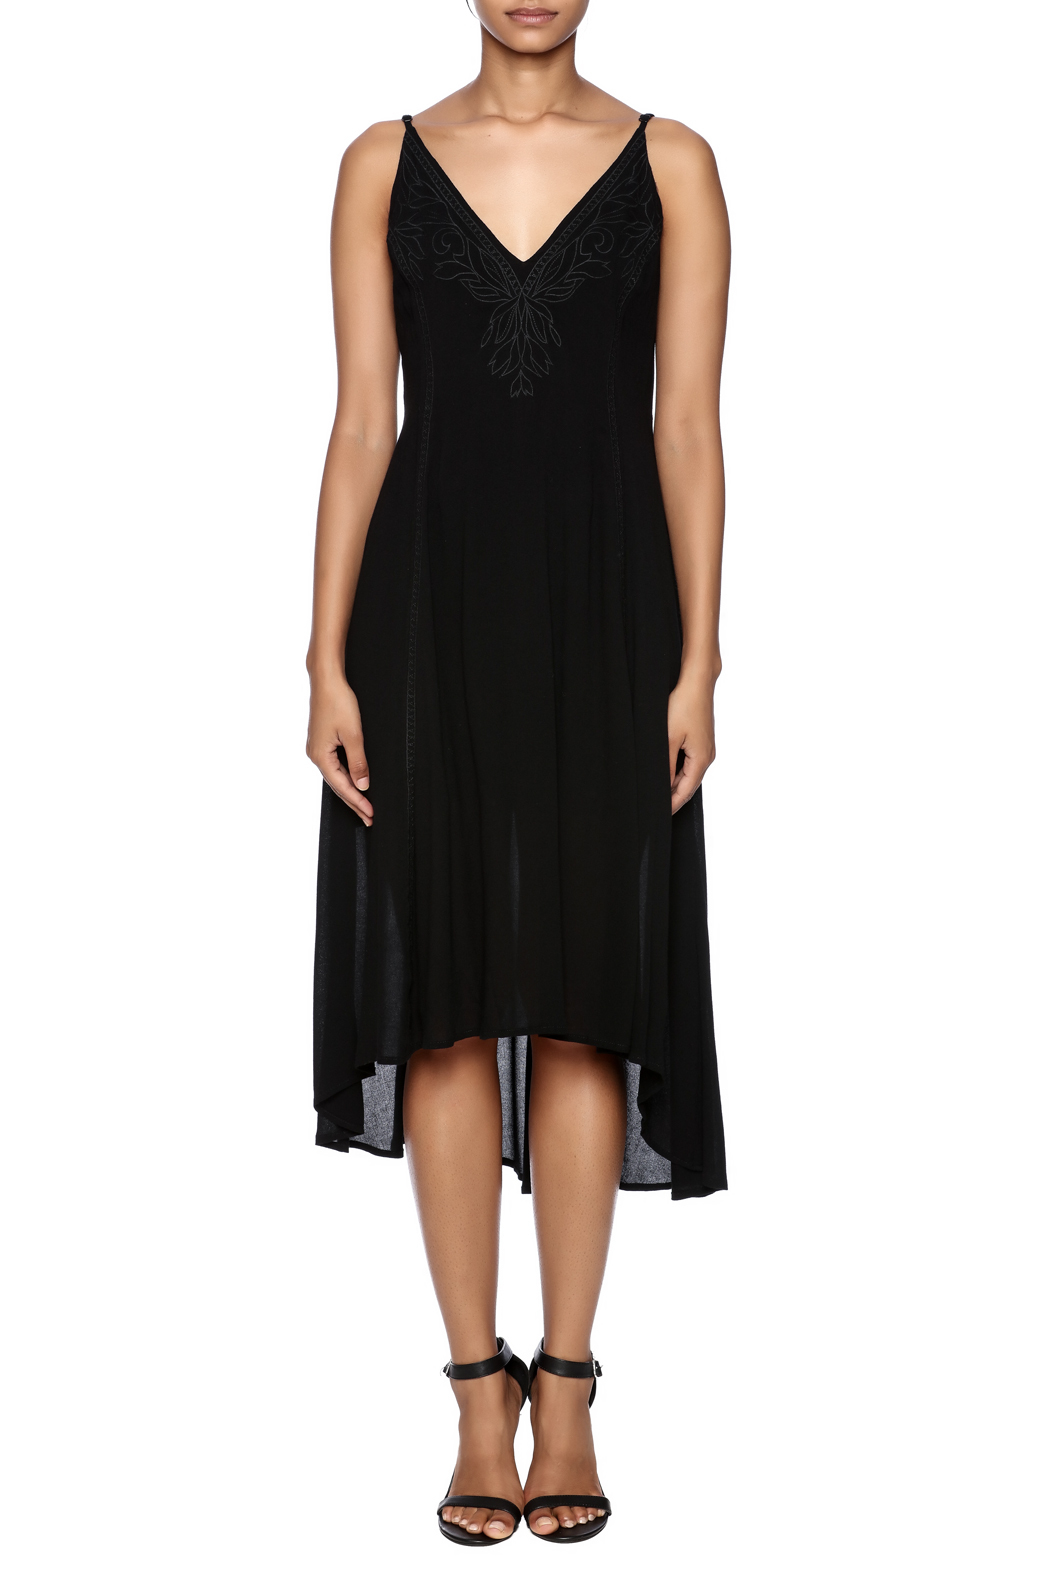 Lush Braelyn Embroidered Dress - Front Cropped Image